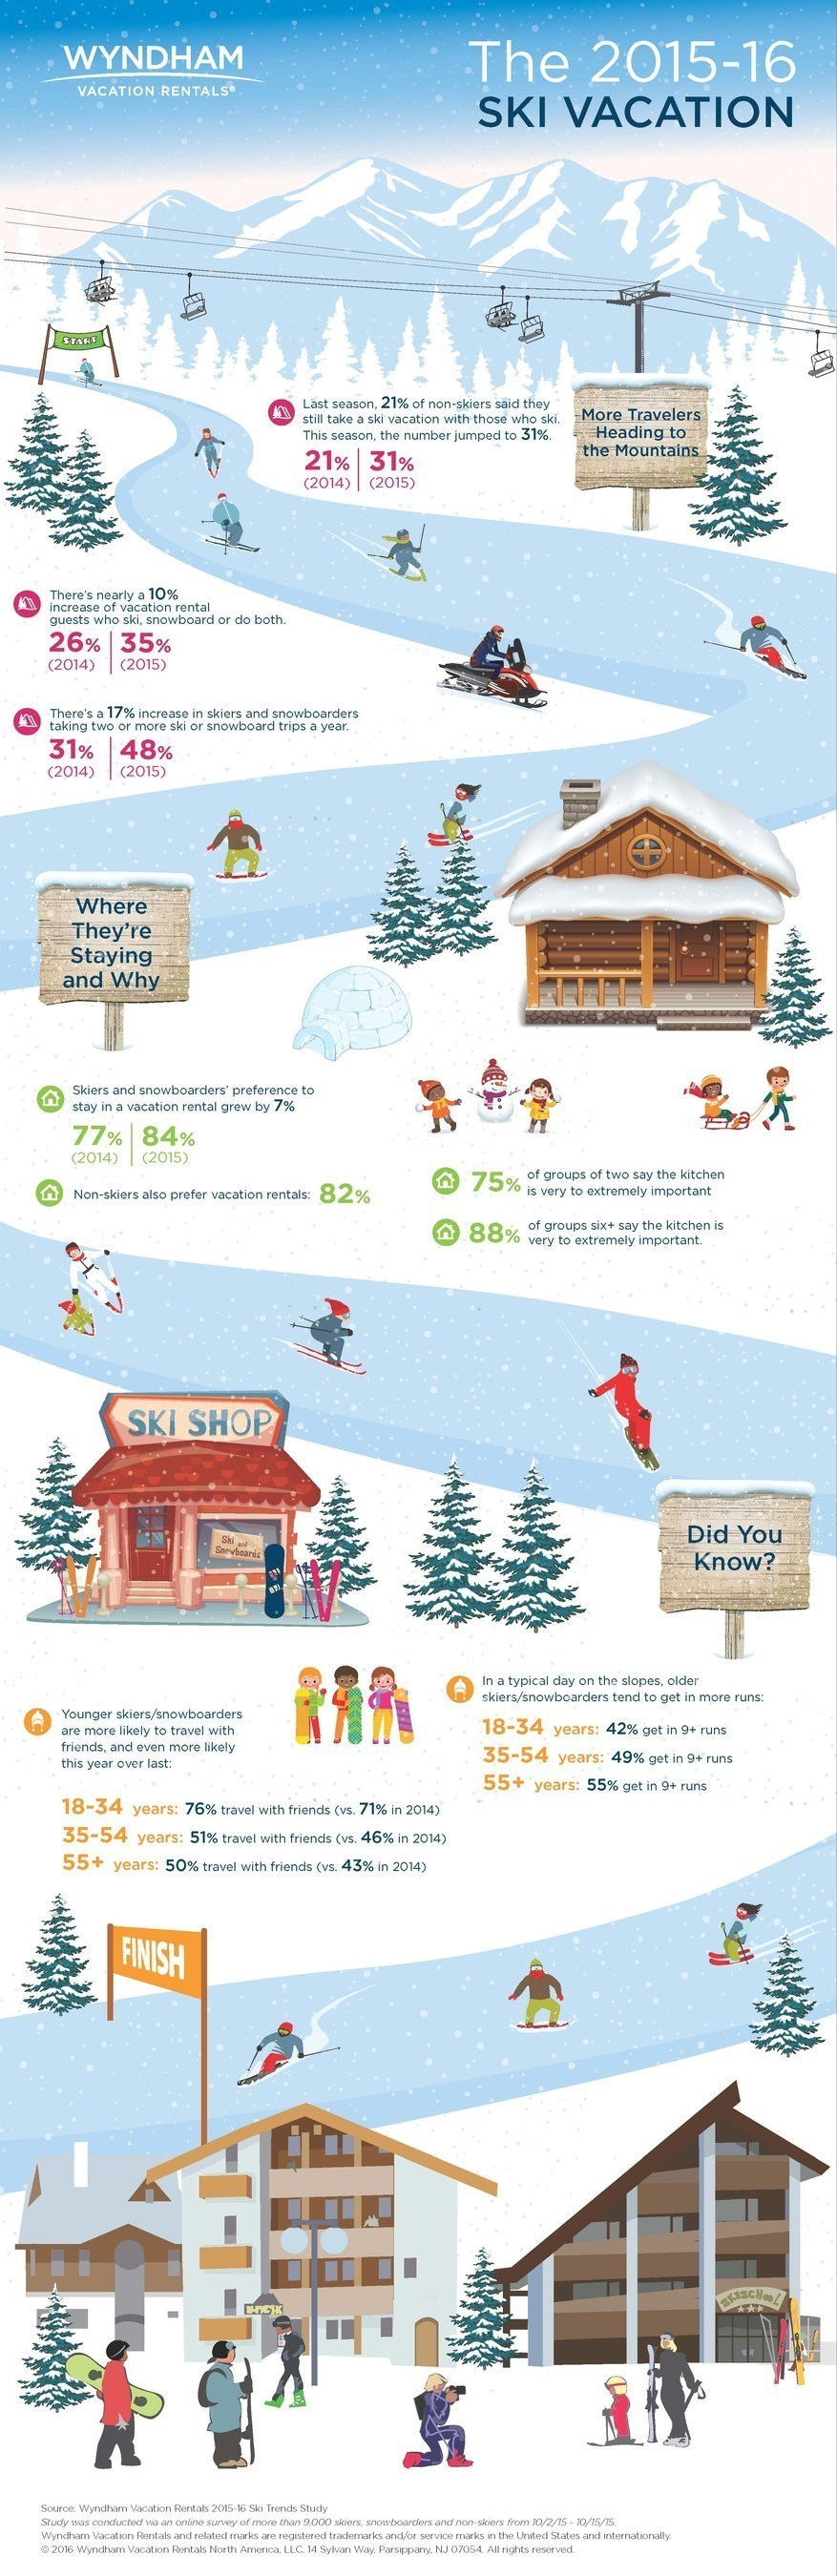 Study sheds insight into who's hitting the slopes this season and where they're staying.